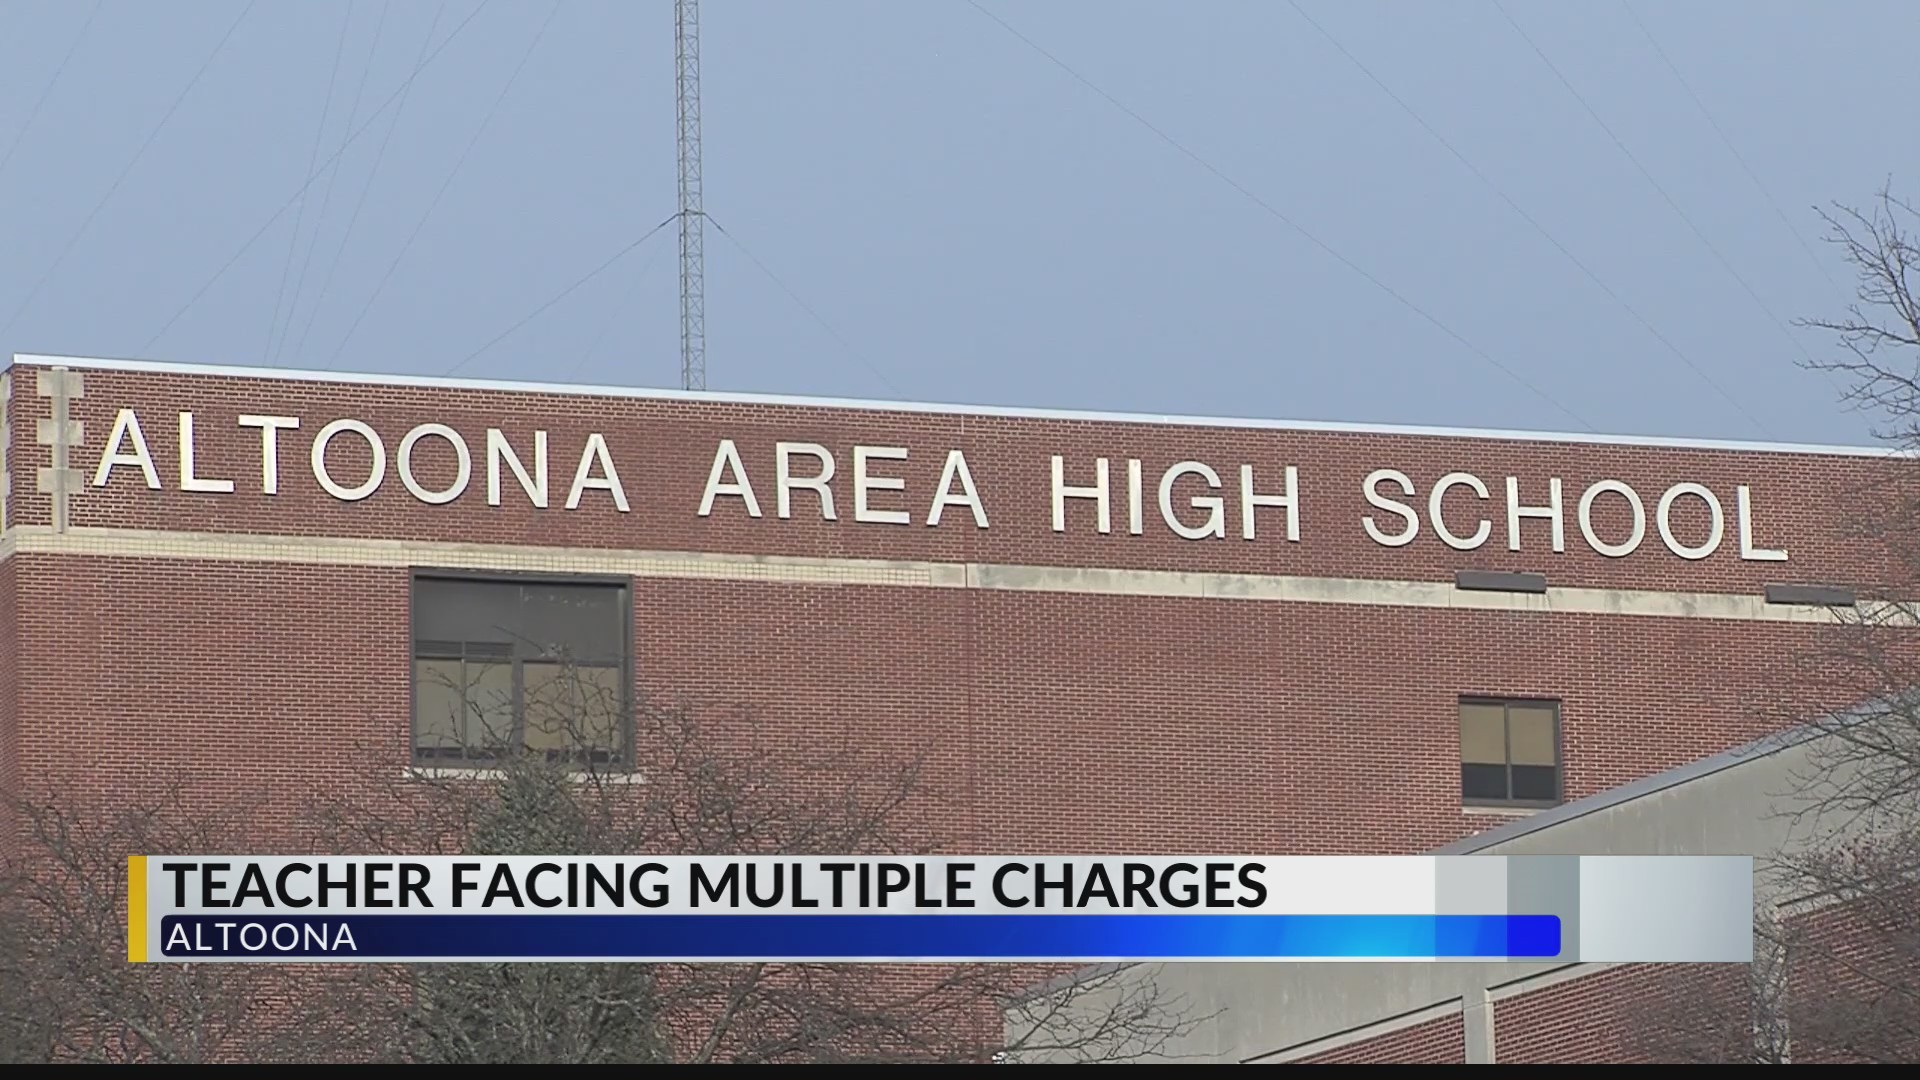 Altoona_teacher_facing_multiple_charges_0_20190125223842